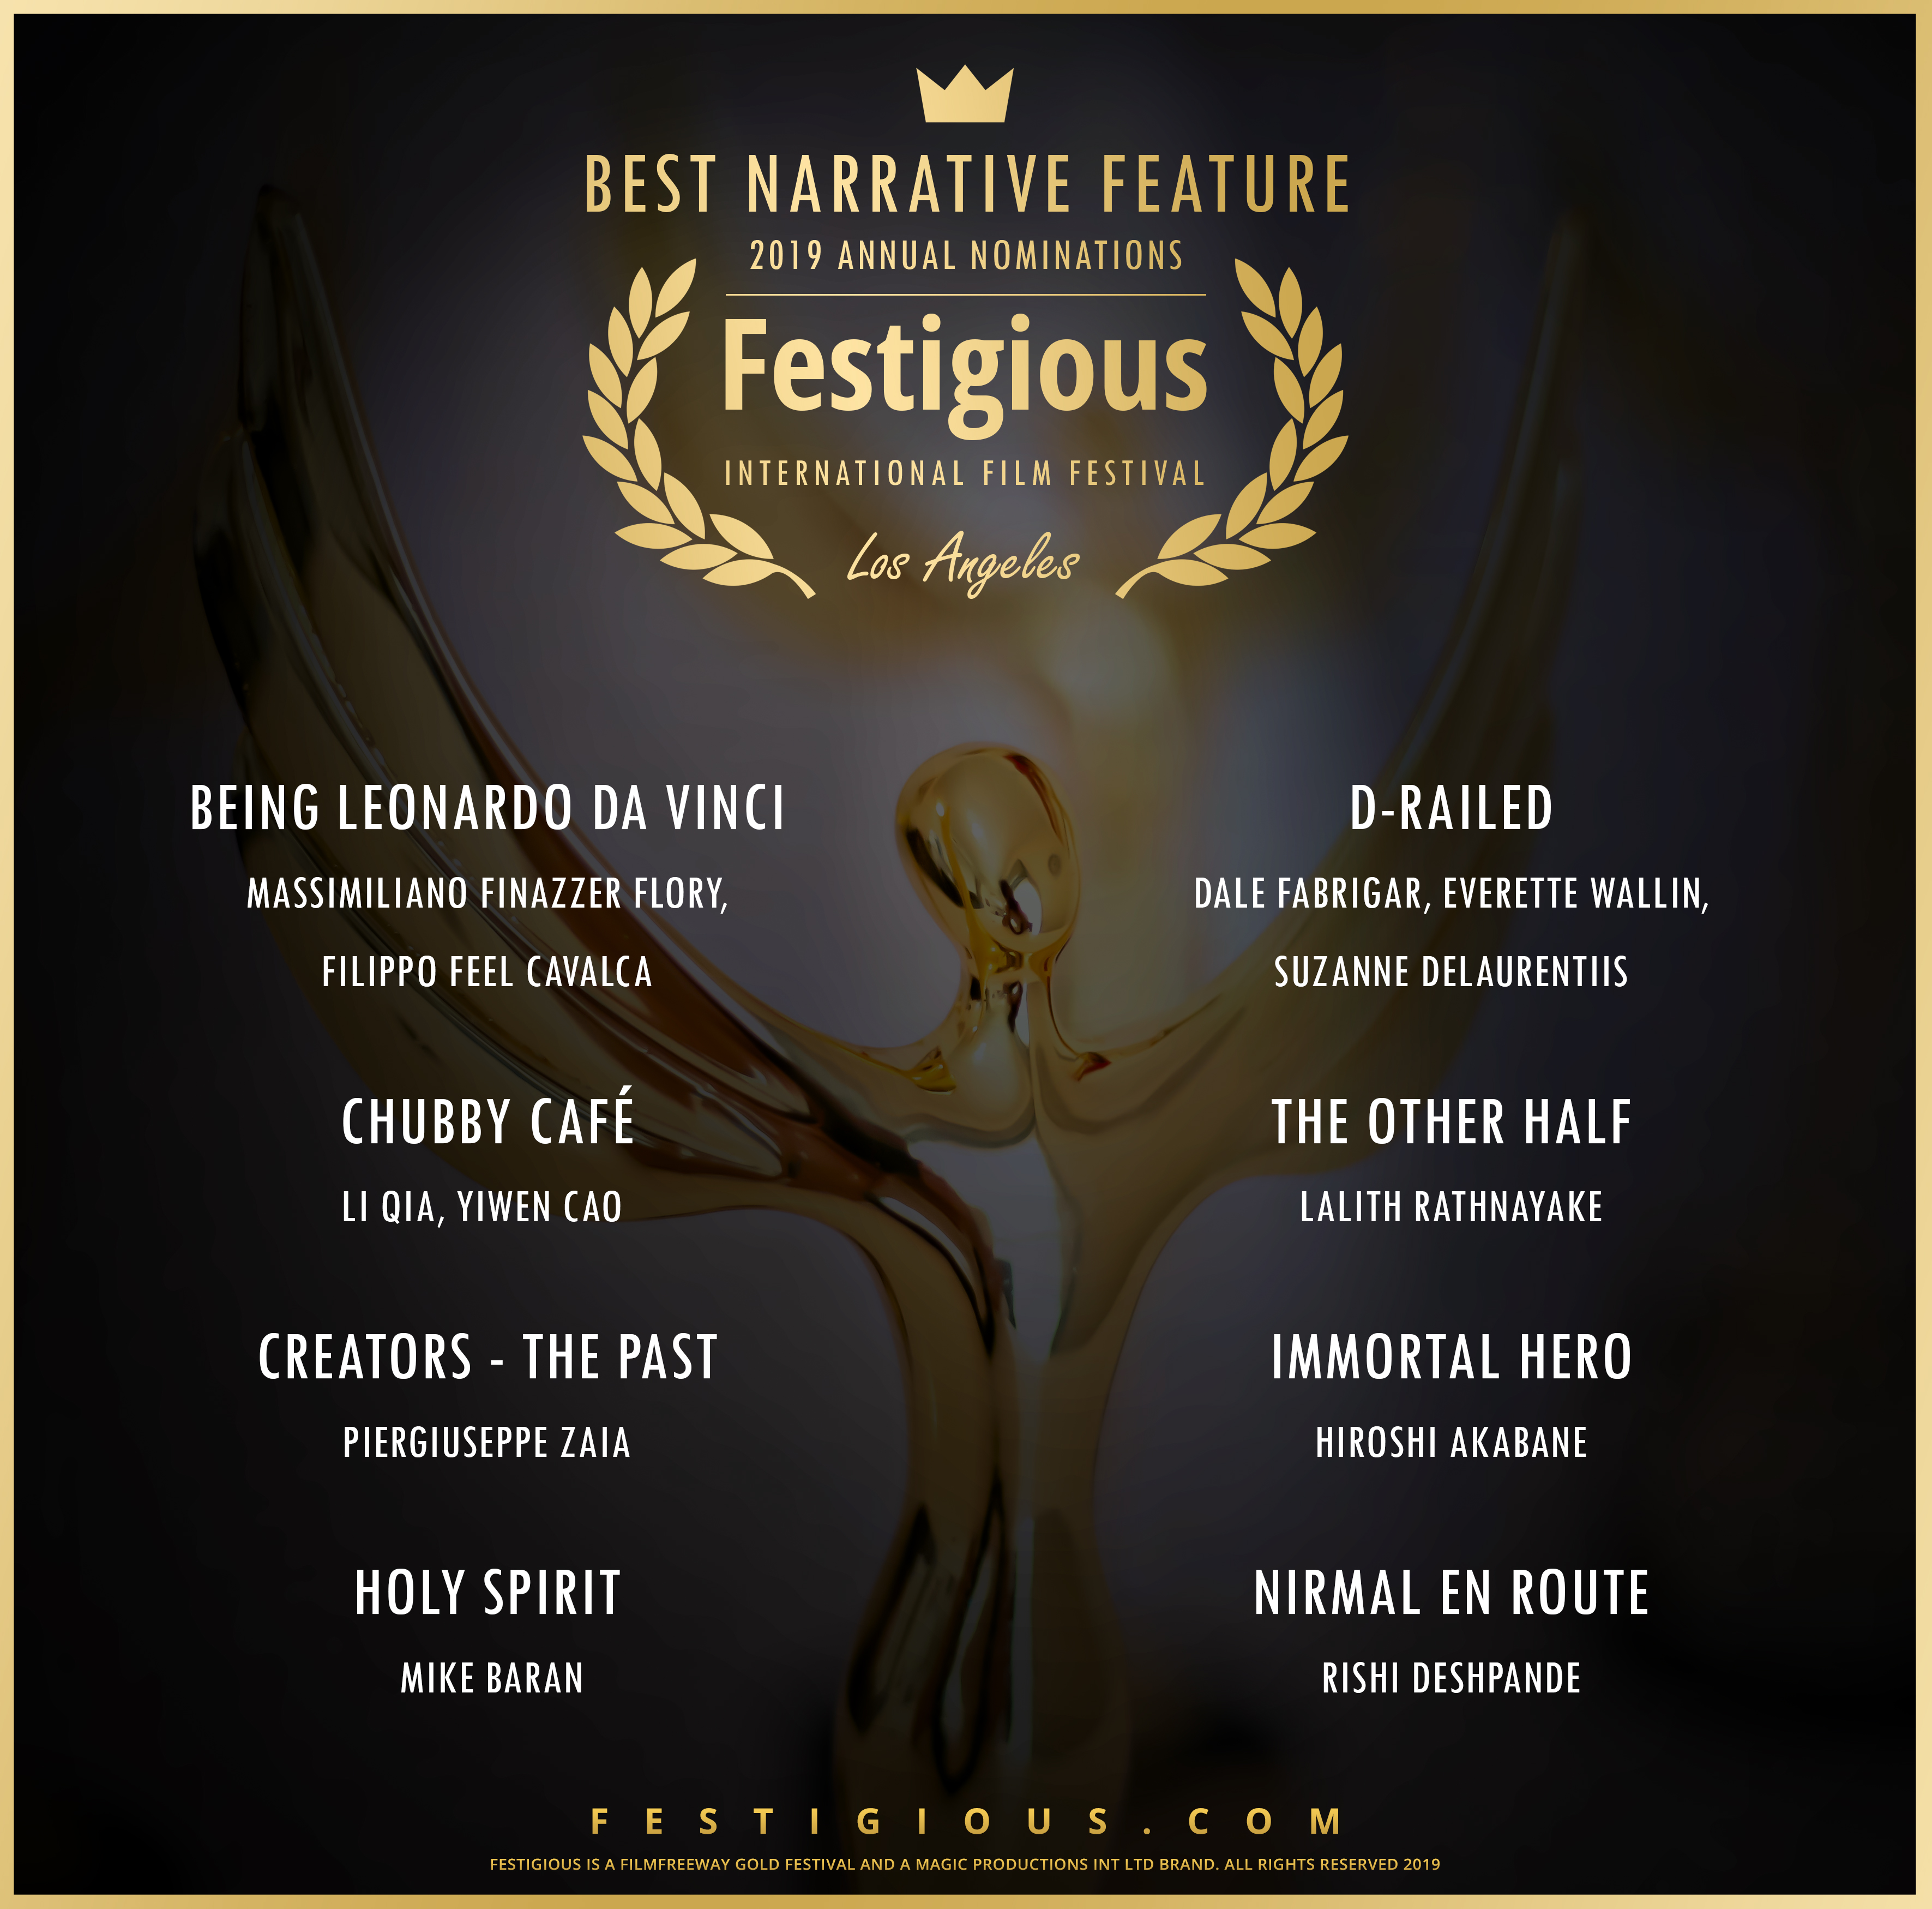 Festigious Best Narrative Feature